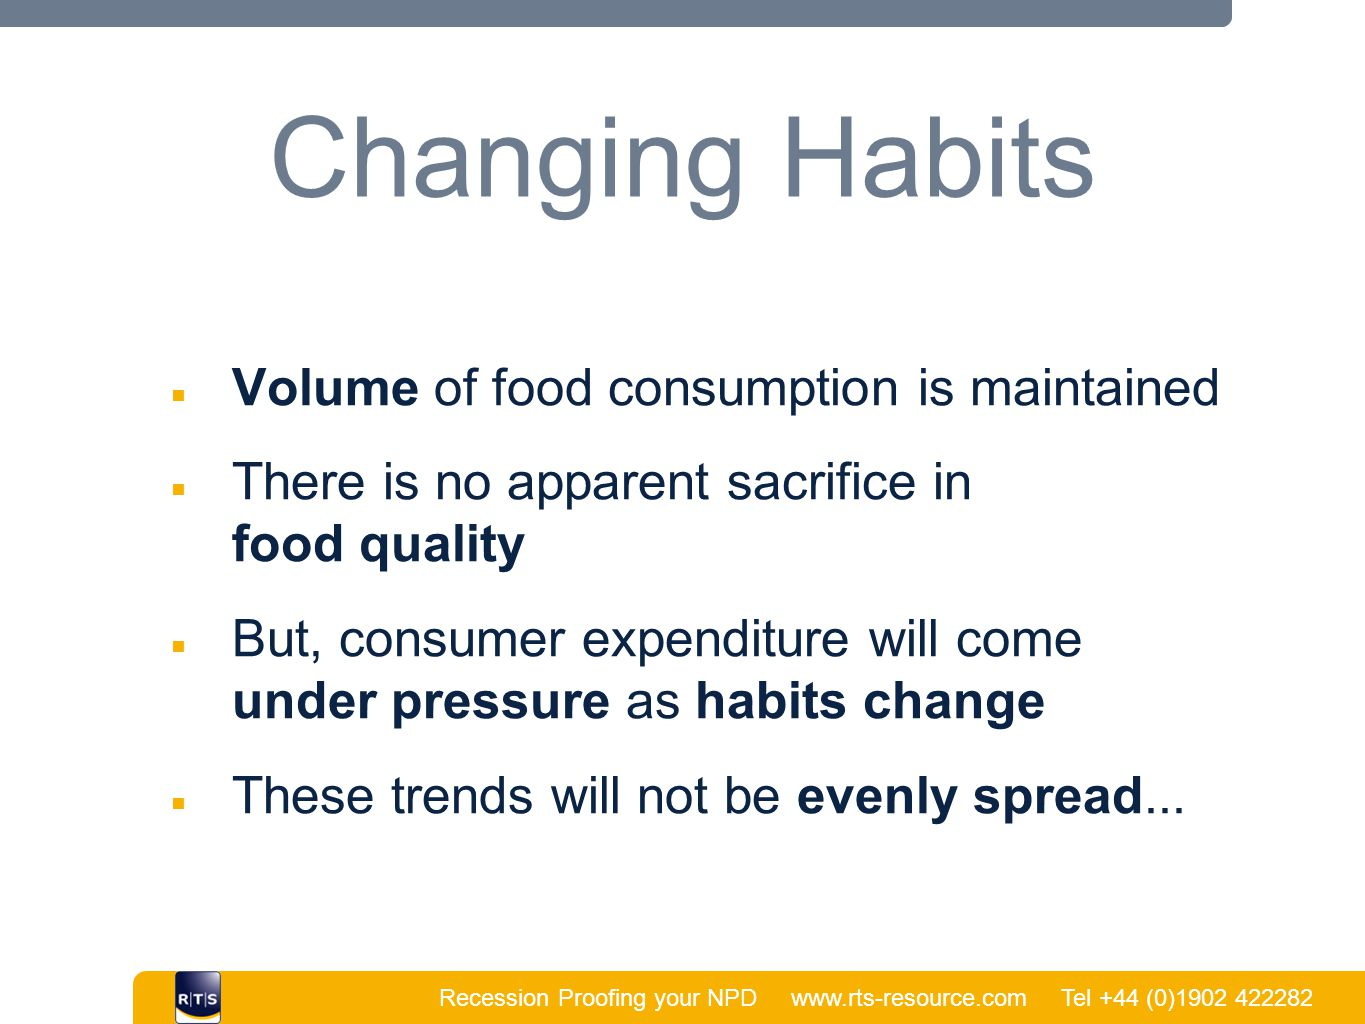 Recession Proofing your NPD www.rts-resource.com Tel +44 (0)1902 422282 | Changing Habits ■ Volume of food consumption is maintained ■ There is no apparent sacrifice in food quality ■ But, consumer expenditure will come under pressure as habits change ■ These trends will not be evenly spread...